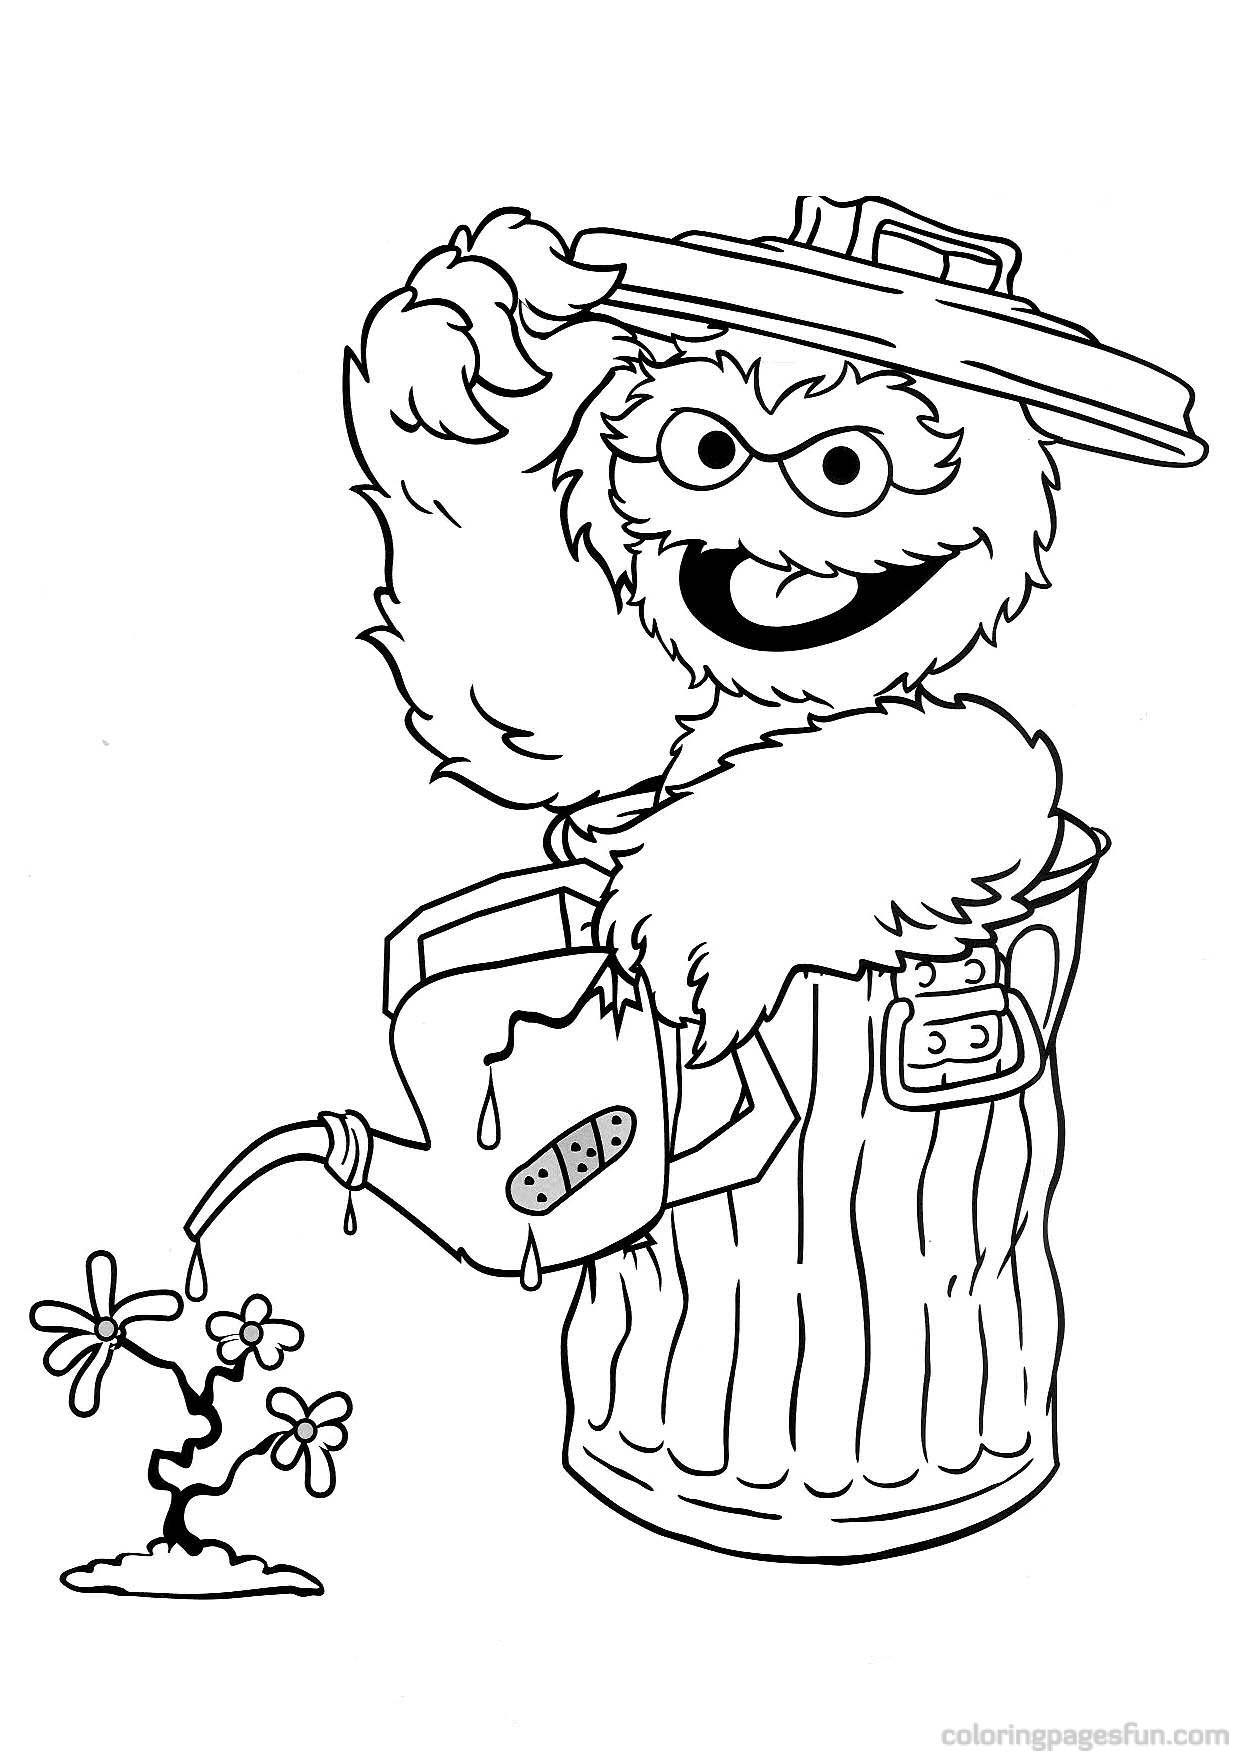 sesame street coloring book | Coloring Page